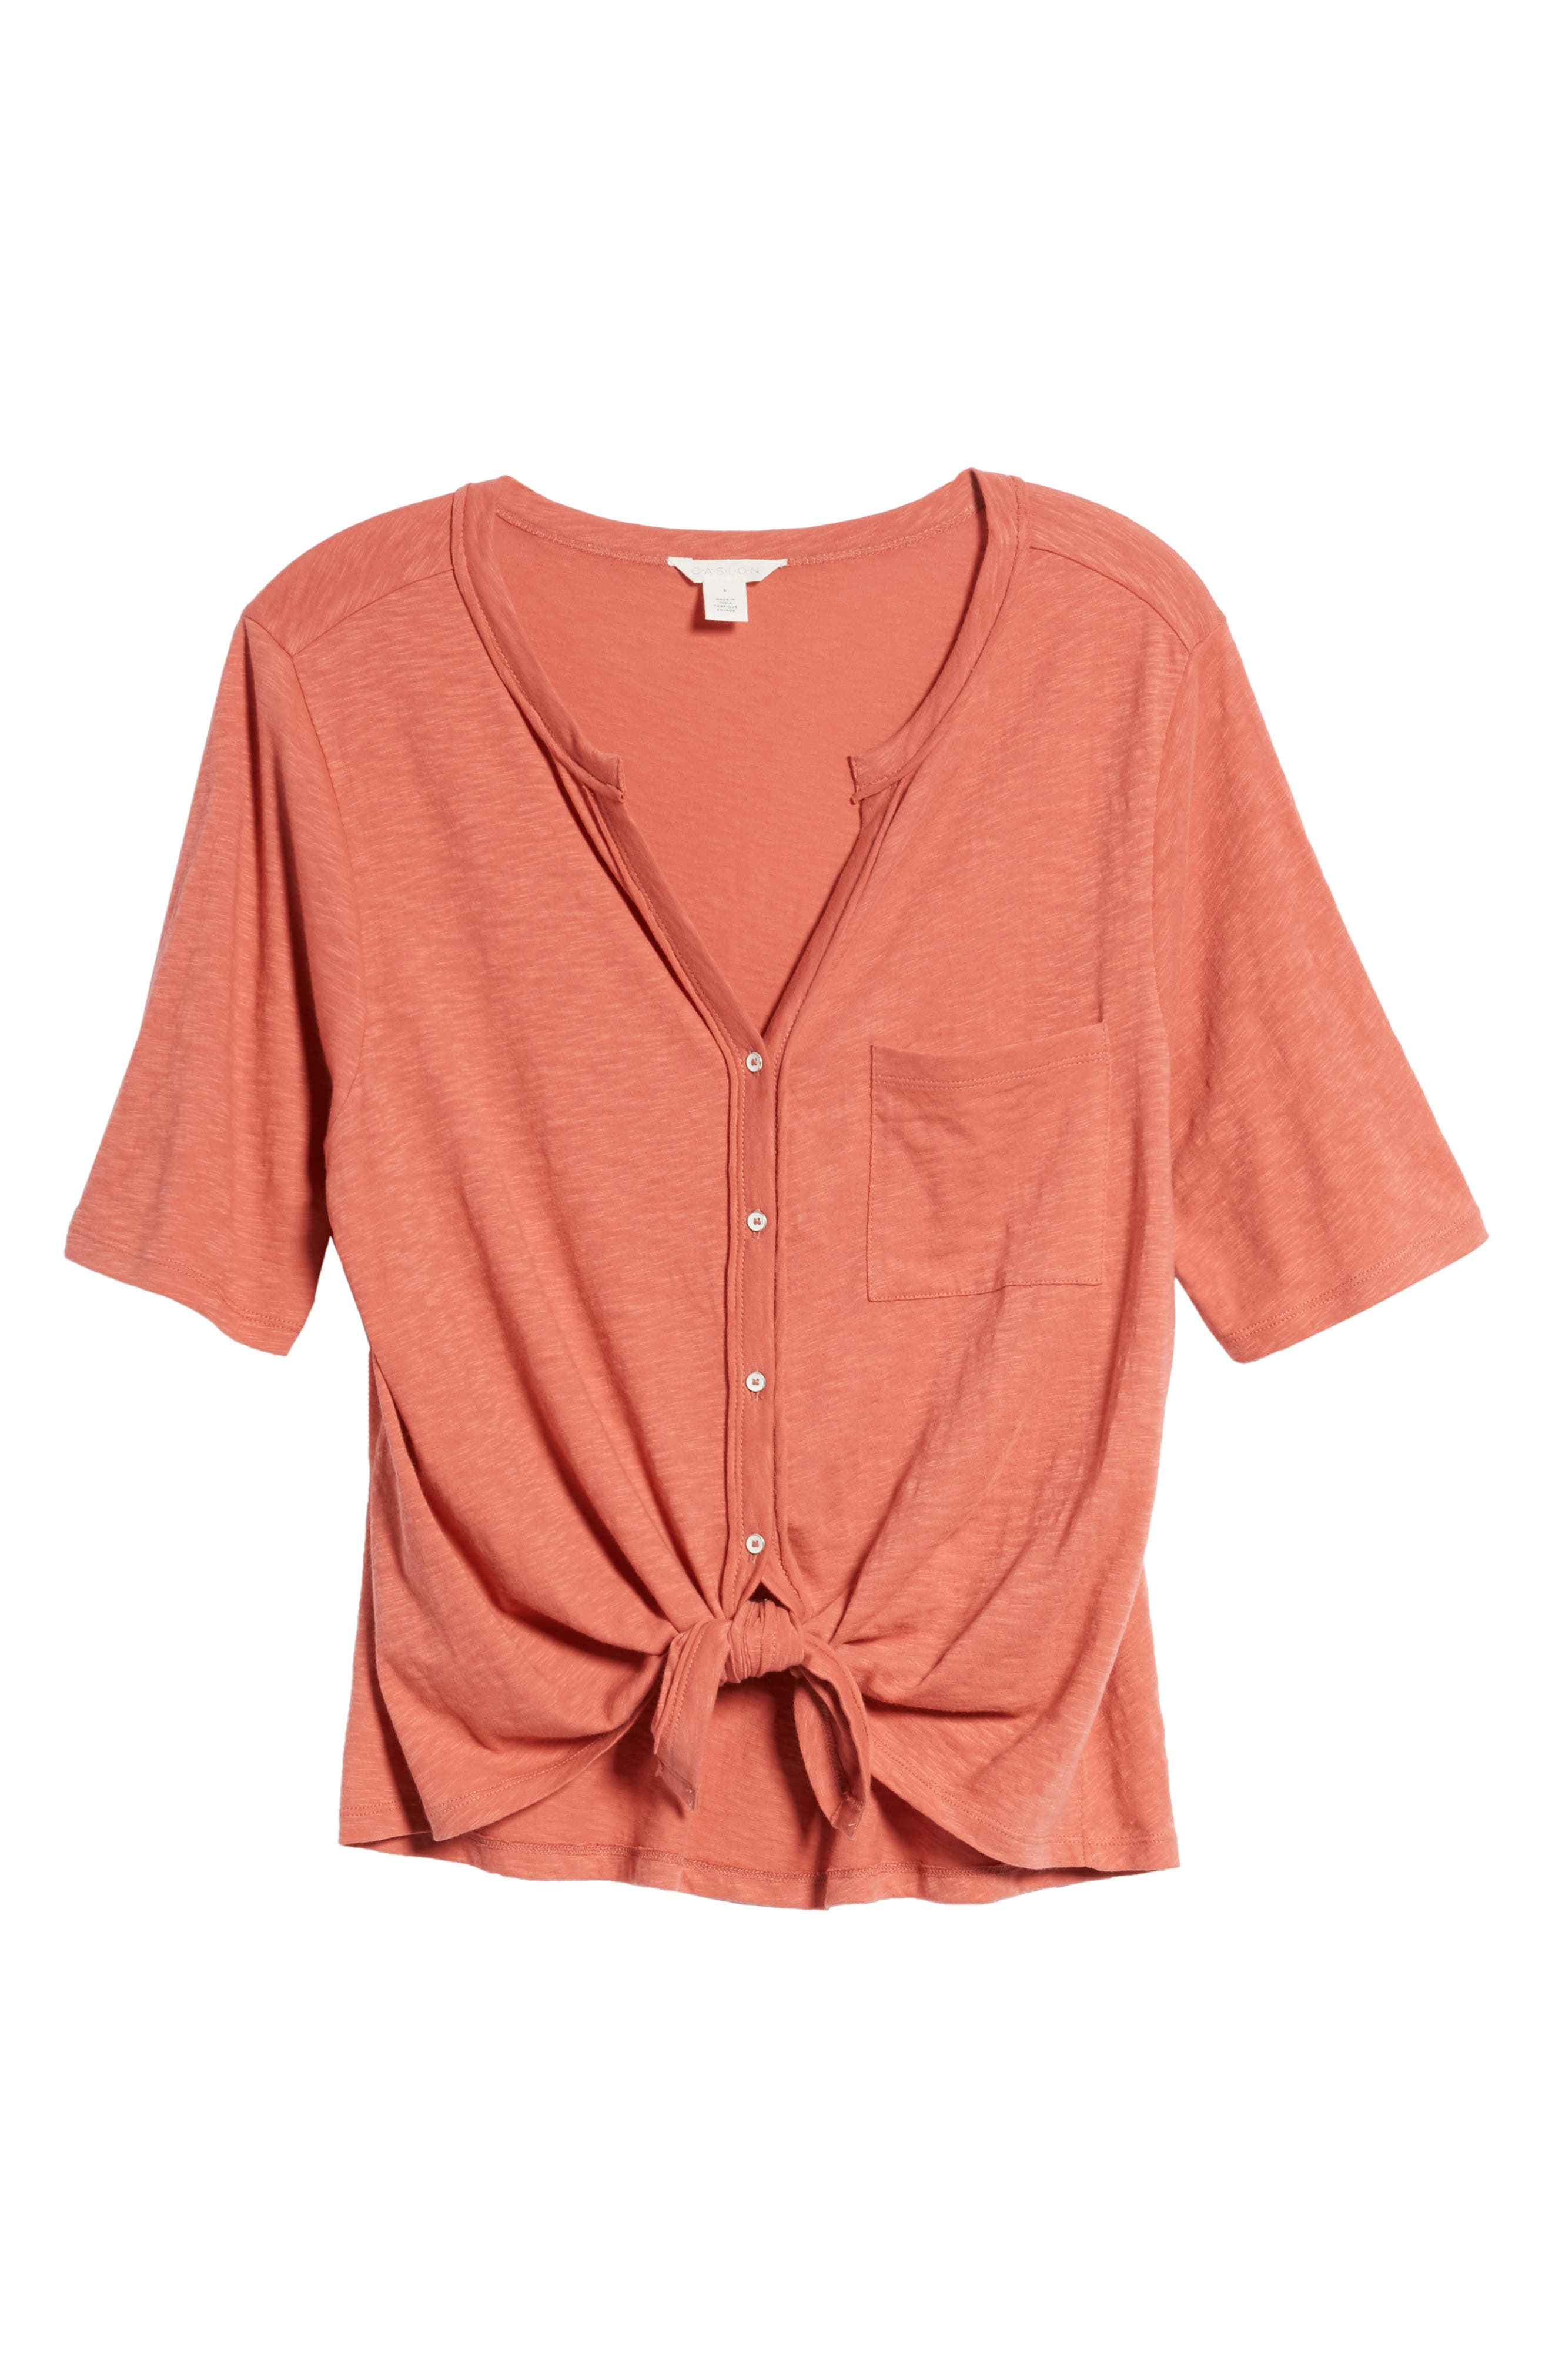 Tie Front Tee,                             Alternate thumbnail 7, color,                             951